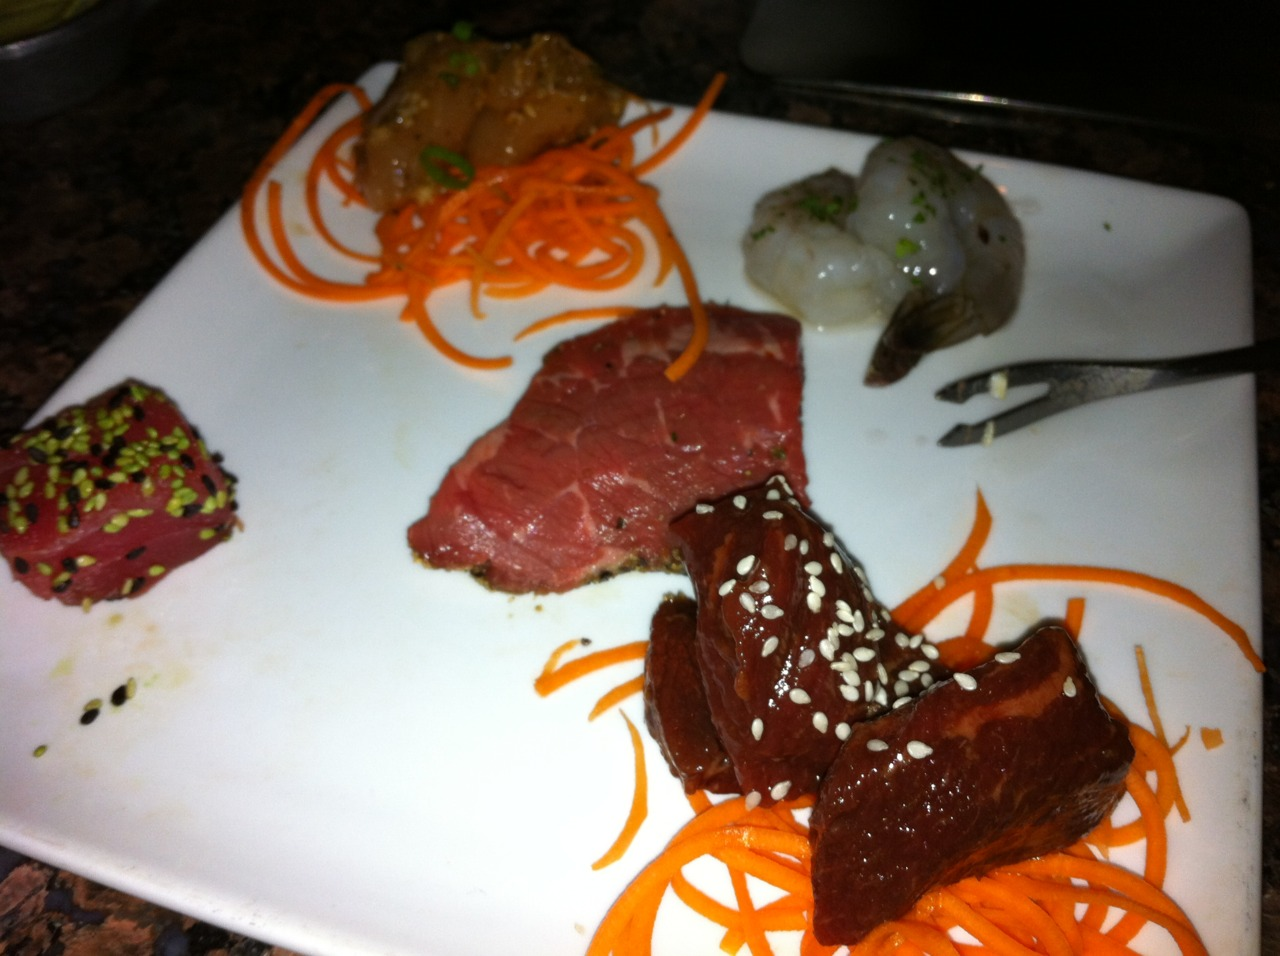 Part of our meal at the localfonduespot, The Melting Pot.